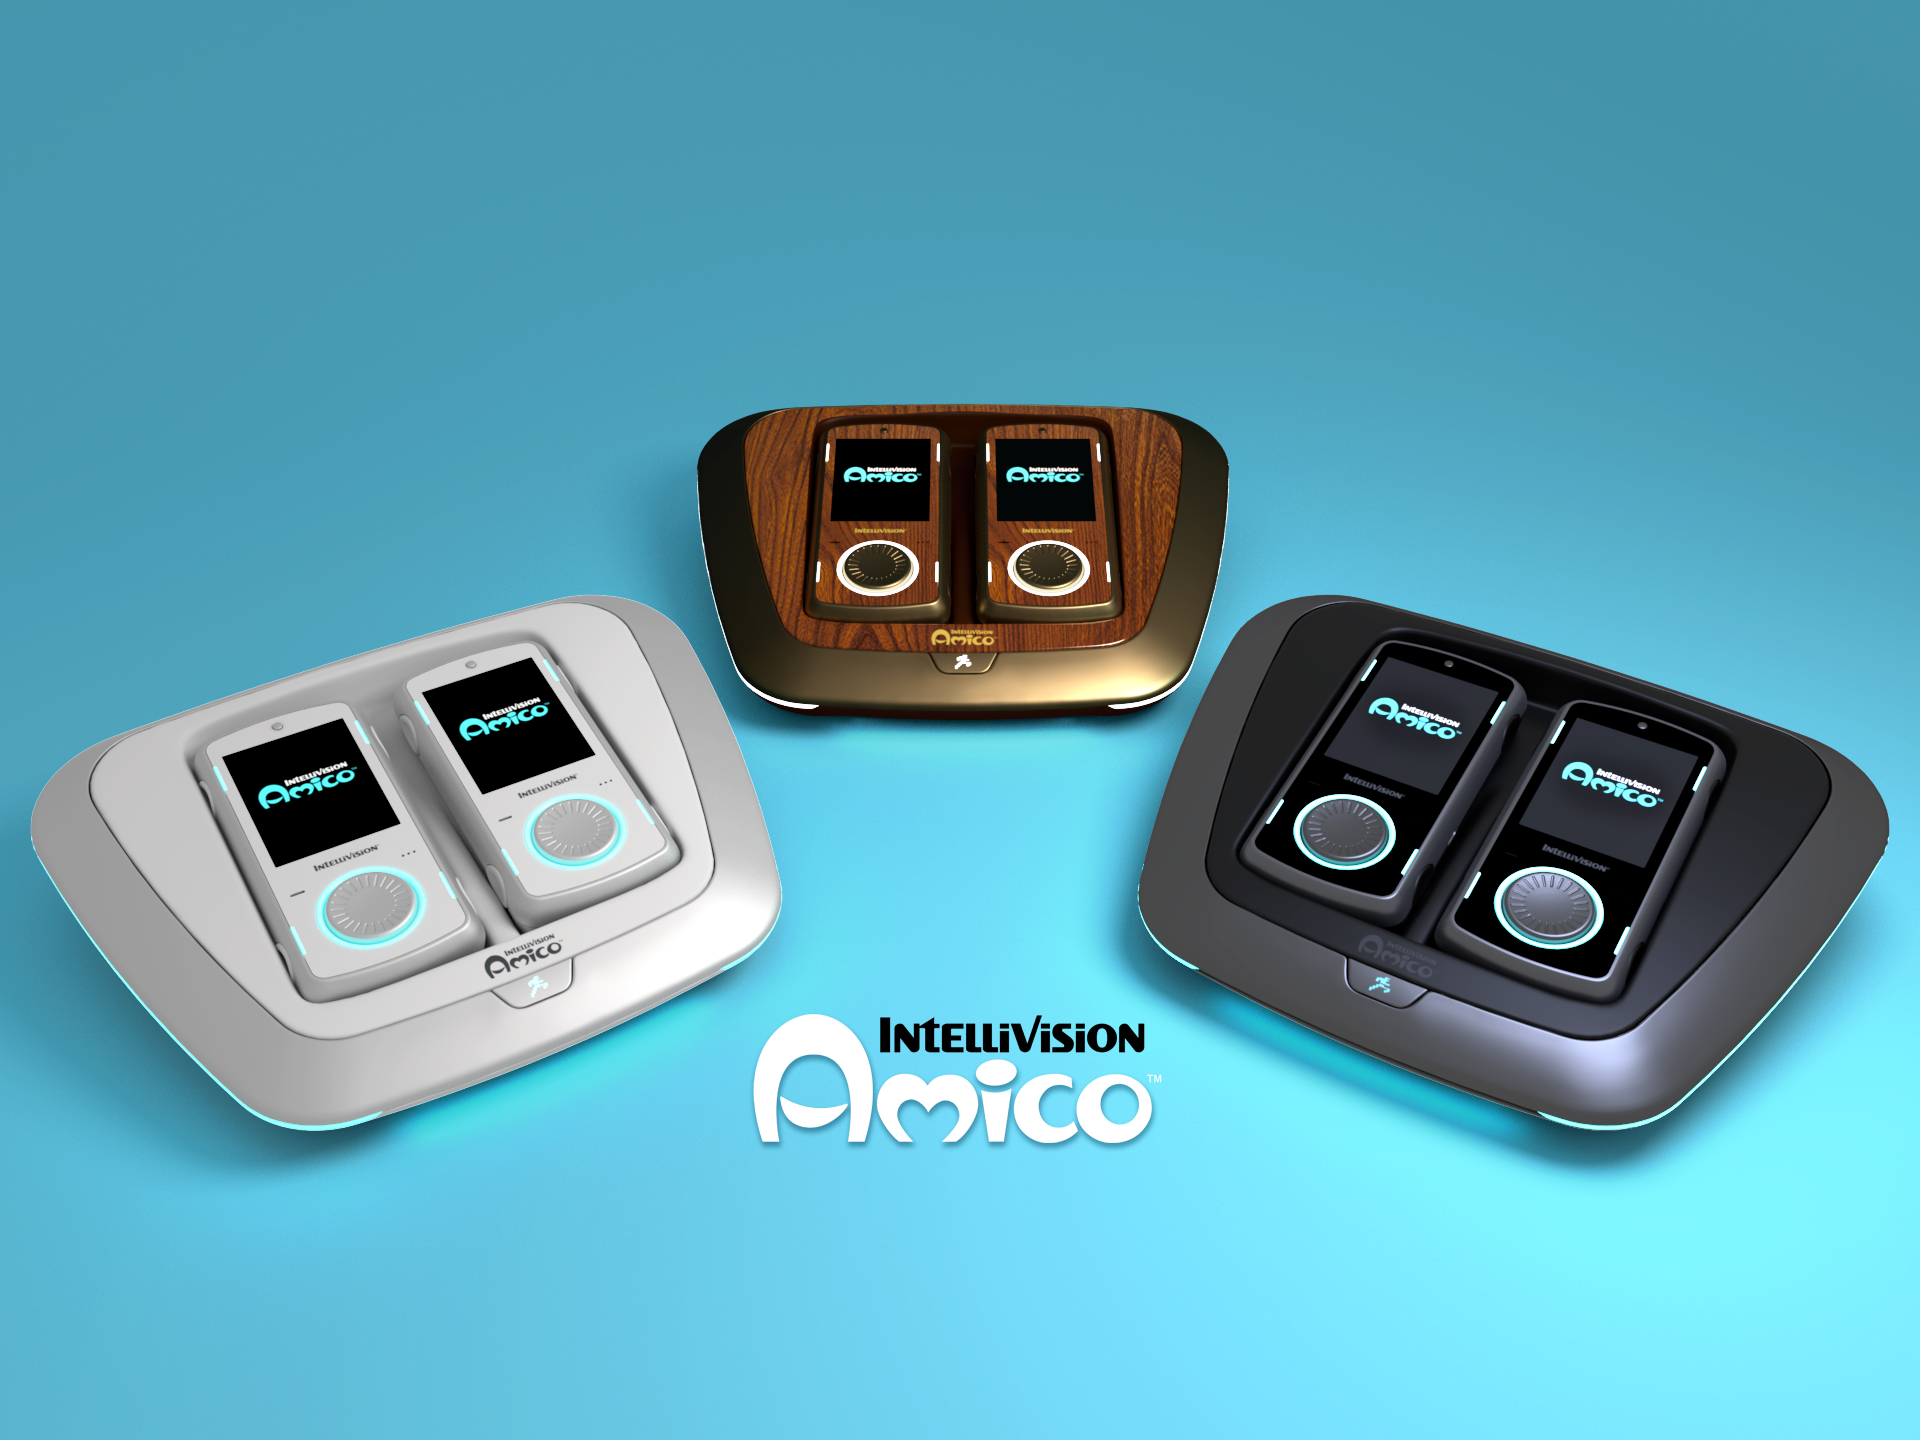 <p>The Intellivision Amico, and its iPod-like controllers. The system's been delayed until 2021.&nbsp;</p>